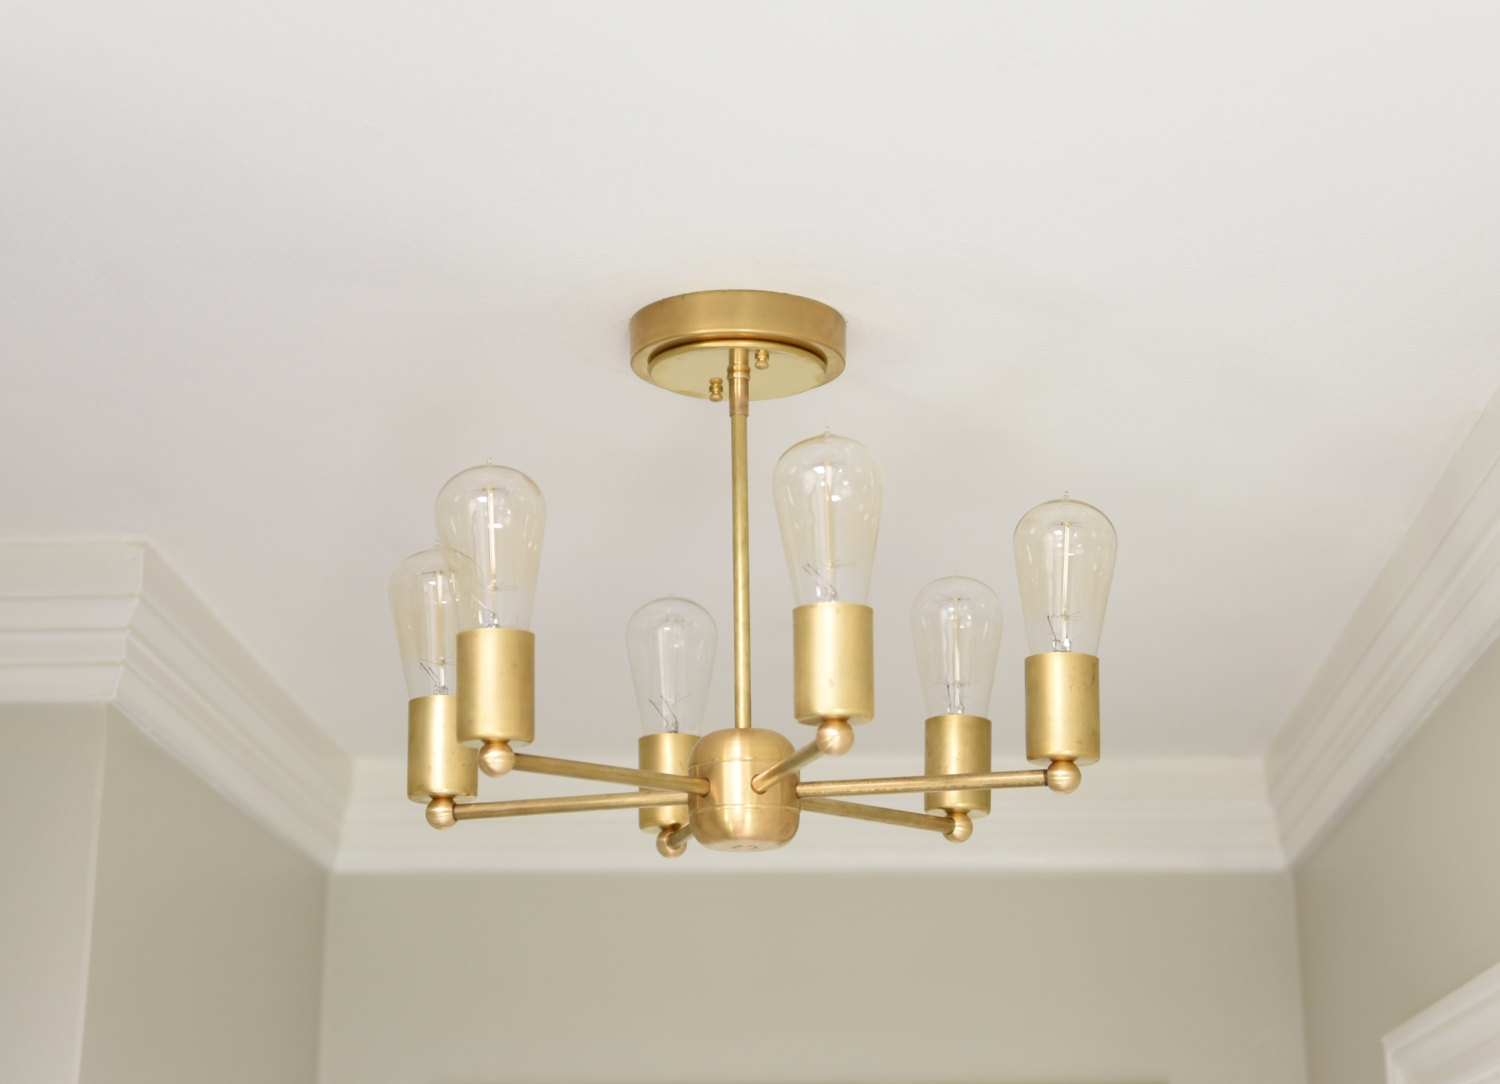 Free Shipping Modern Chandelier Gold 6 Arm Pinwheel Bulb Brass Within Gold Modern Chandelier (Image 5 of 15)